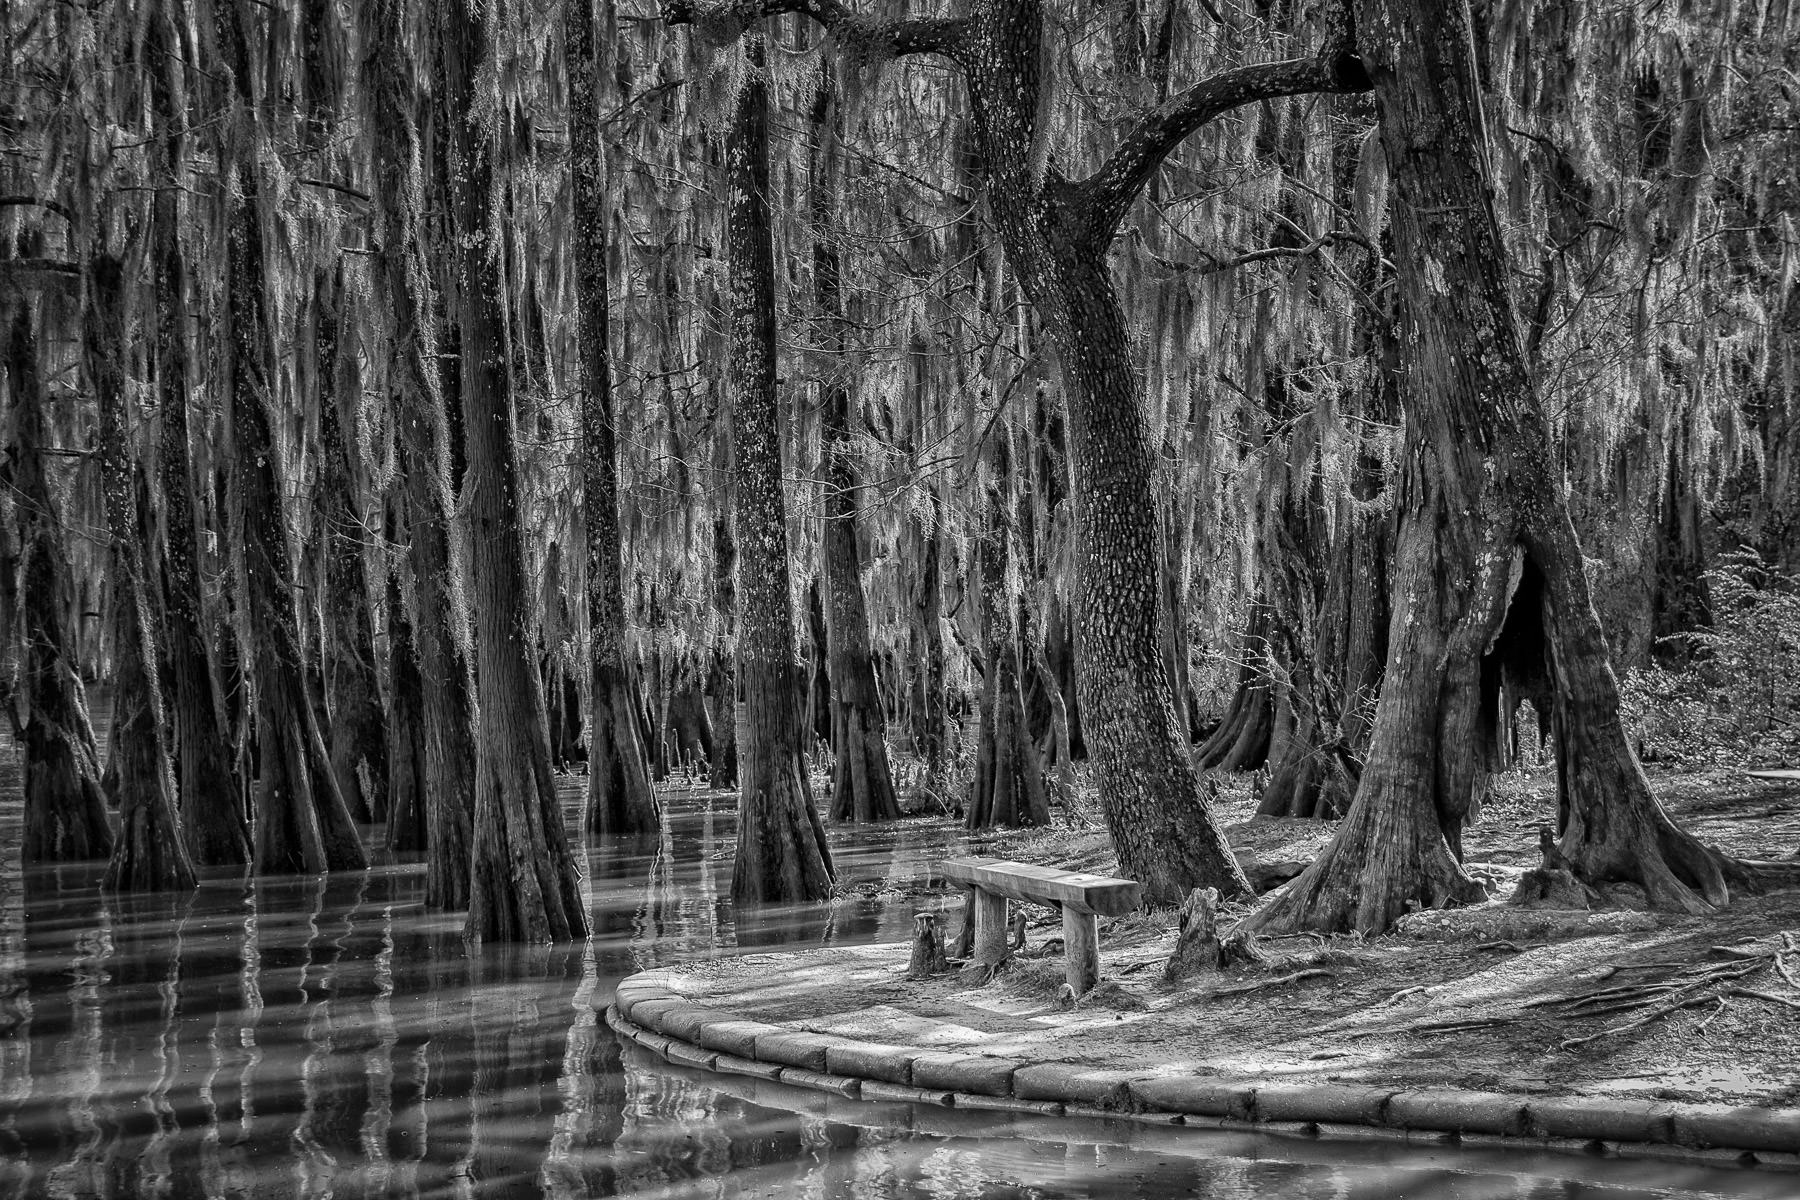 Cypress trees rise around a bench at Caddo Lake State Park, Texas.